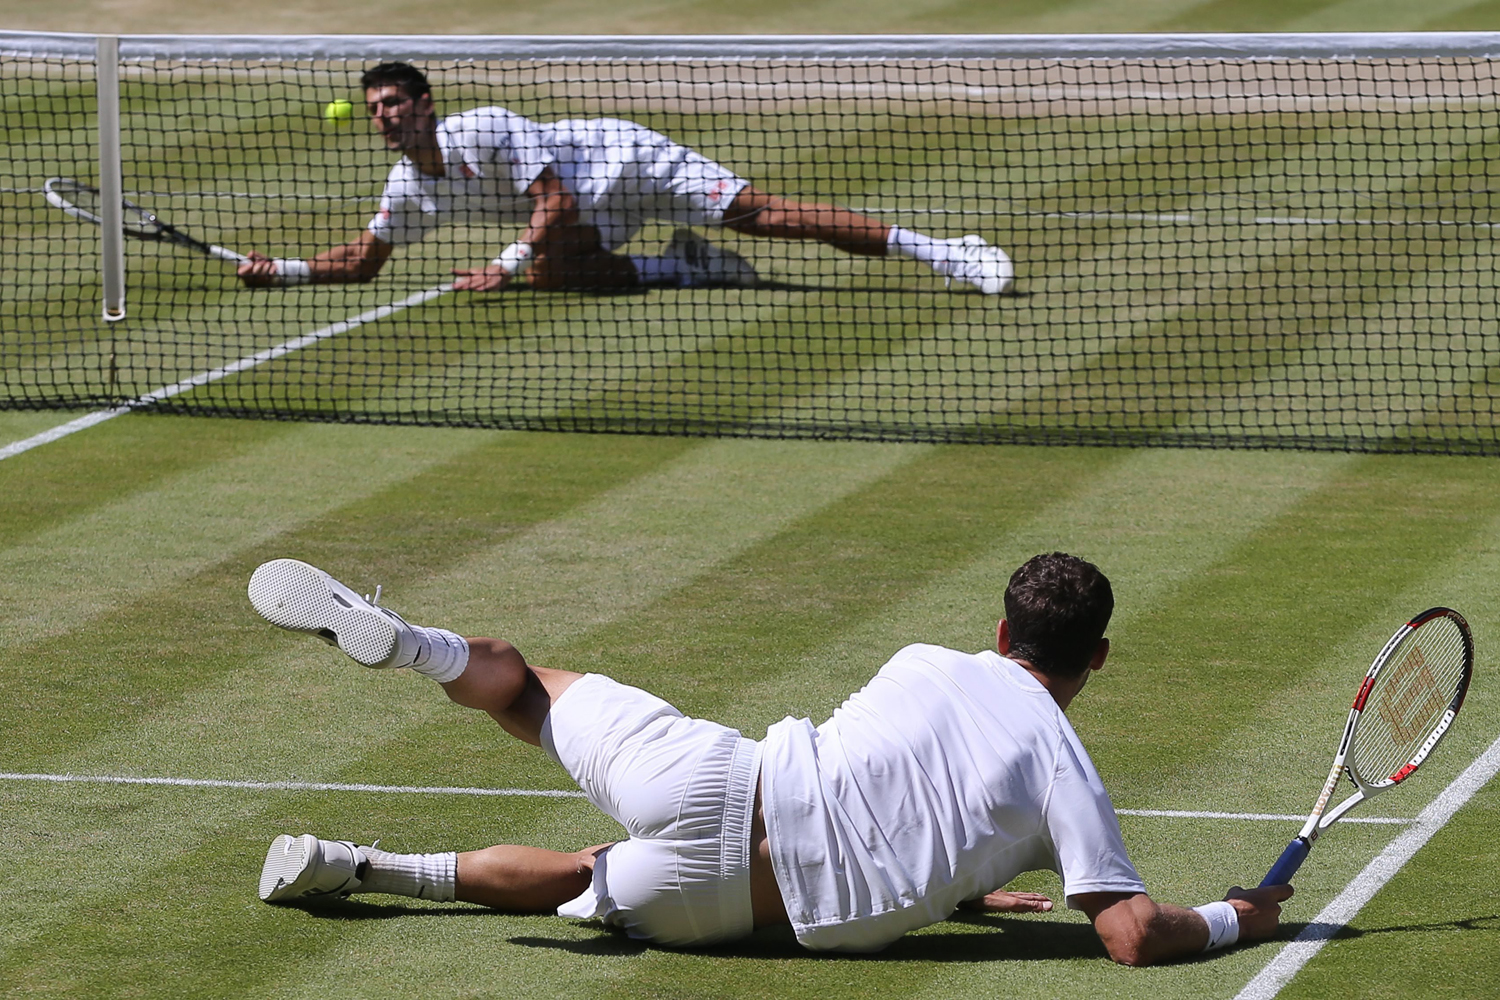 Jul. 4, 2014. Novak Djokovic of Serbia (top) and Grigor Dimitrov of Bulgaria both take a fall in their semi final match during the Wimbledon Championships at the All England Lawn Tennis Club, in London.